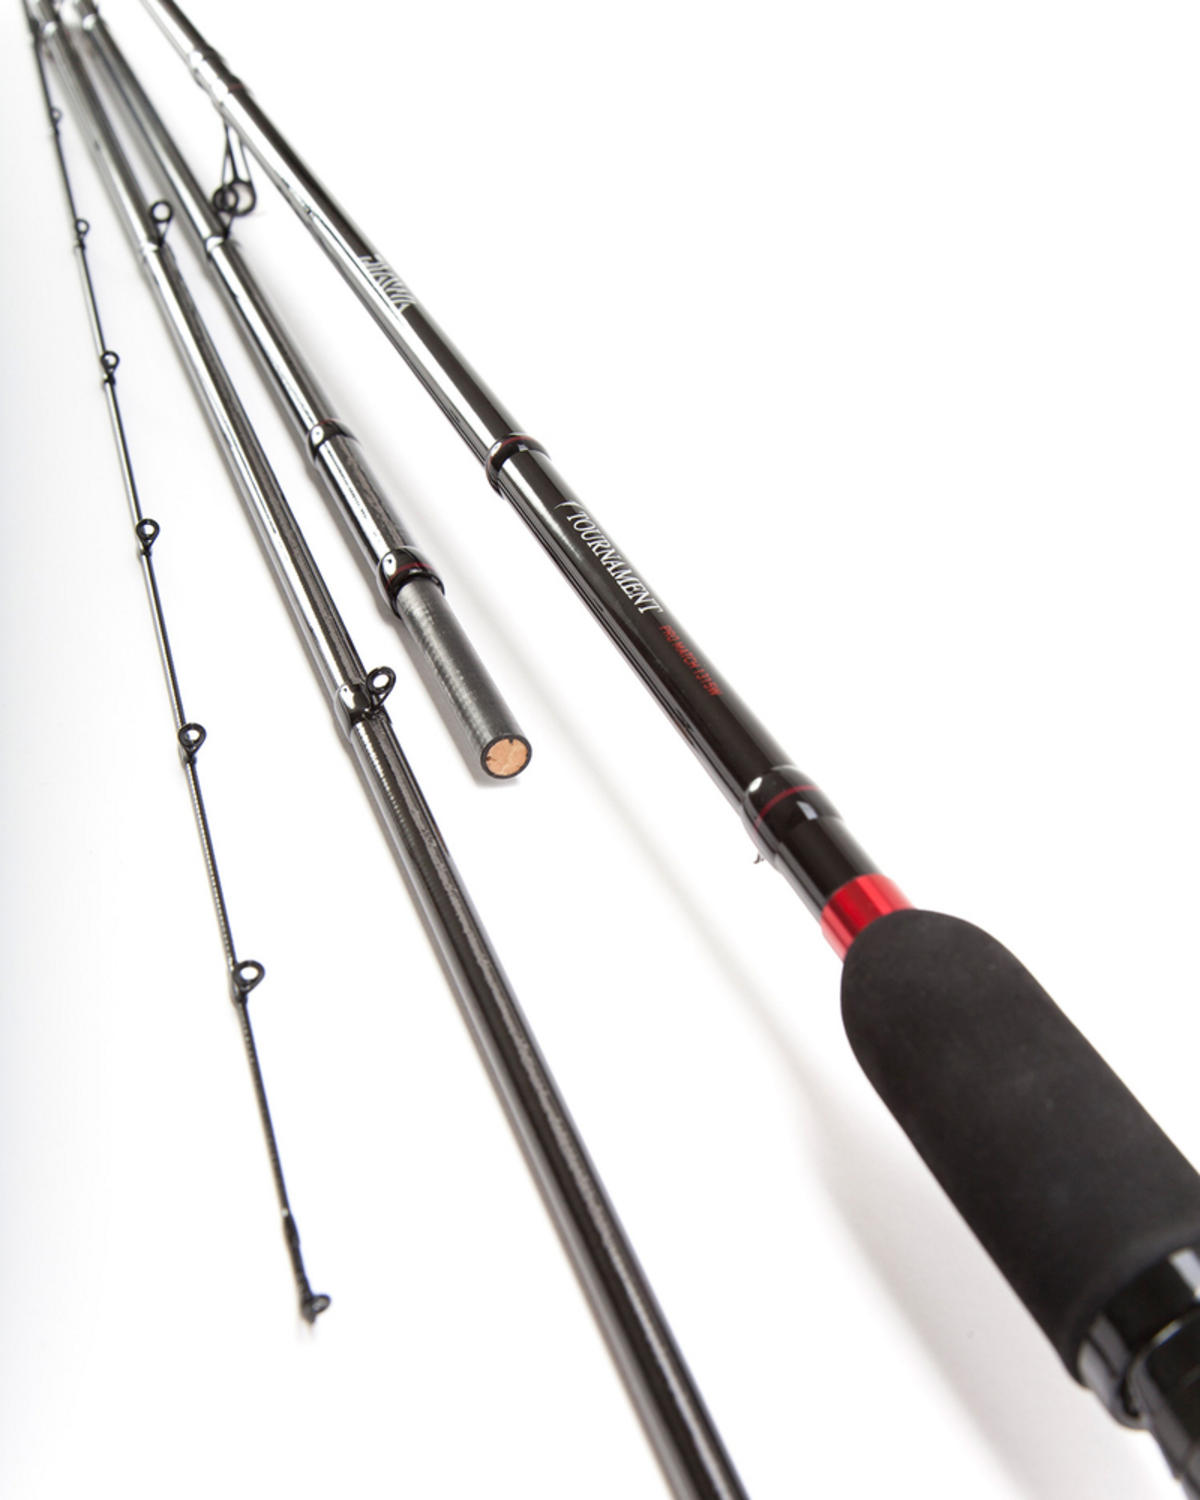 DAIWA INFINITY CARP FISHING RODS , MAGNUM TAPER & SLIM POWER